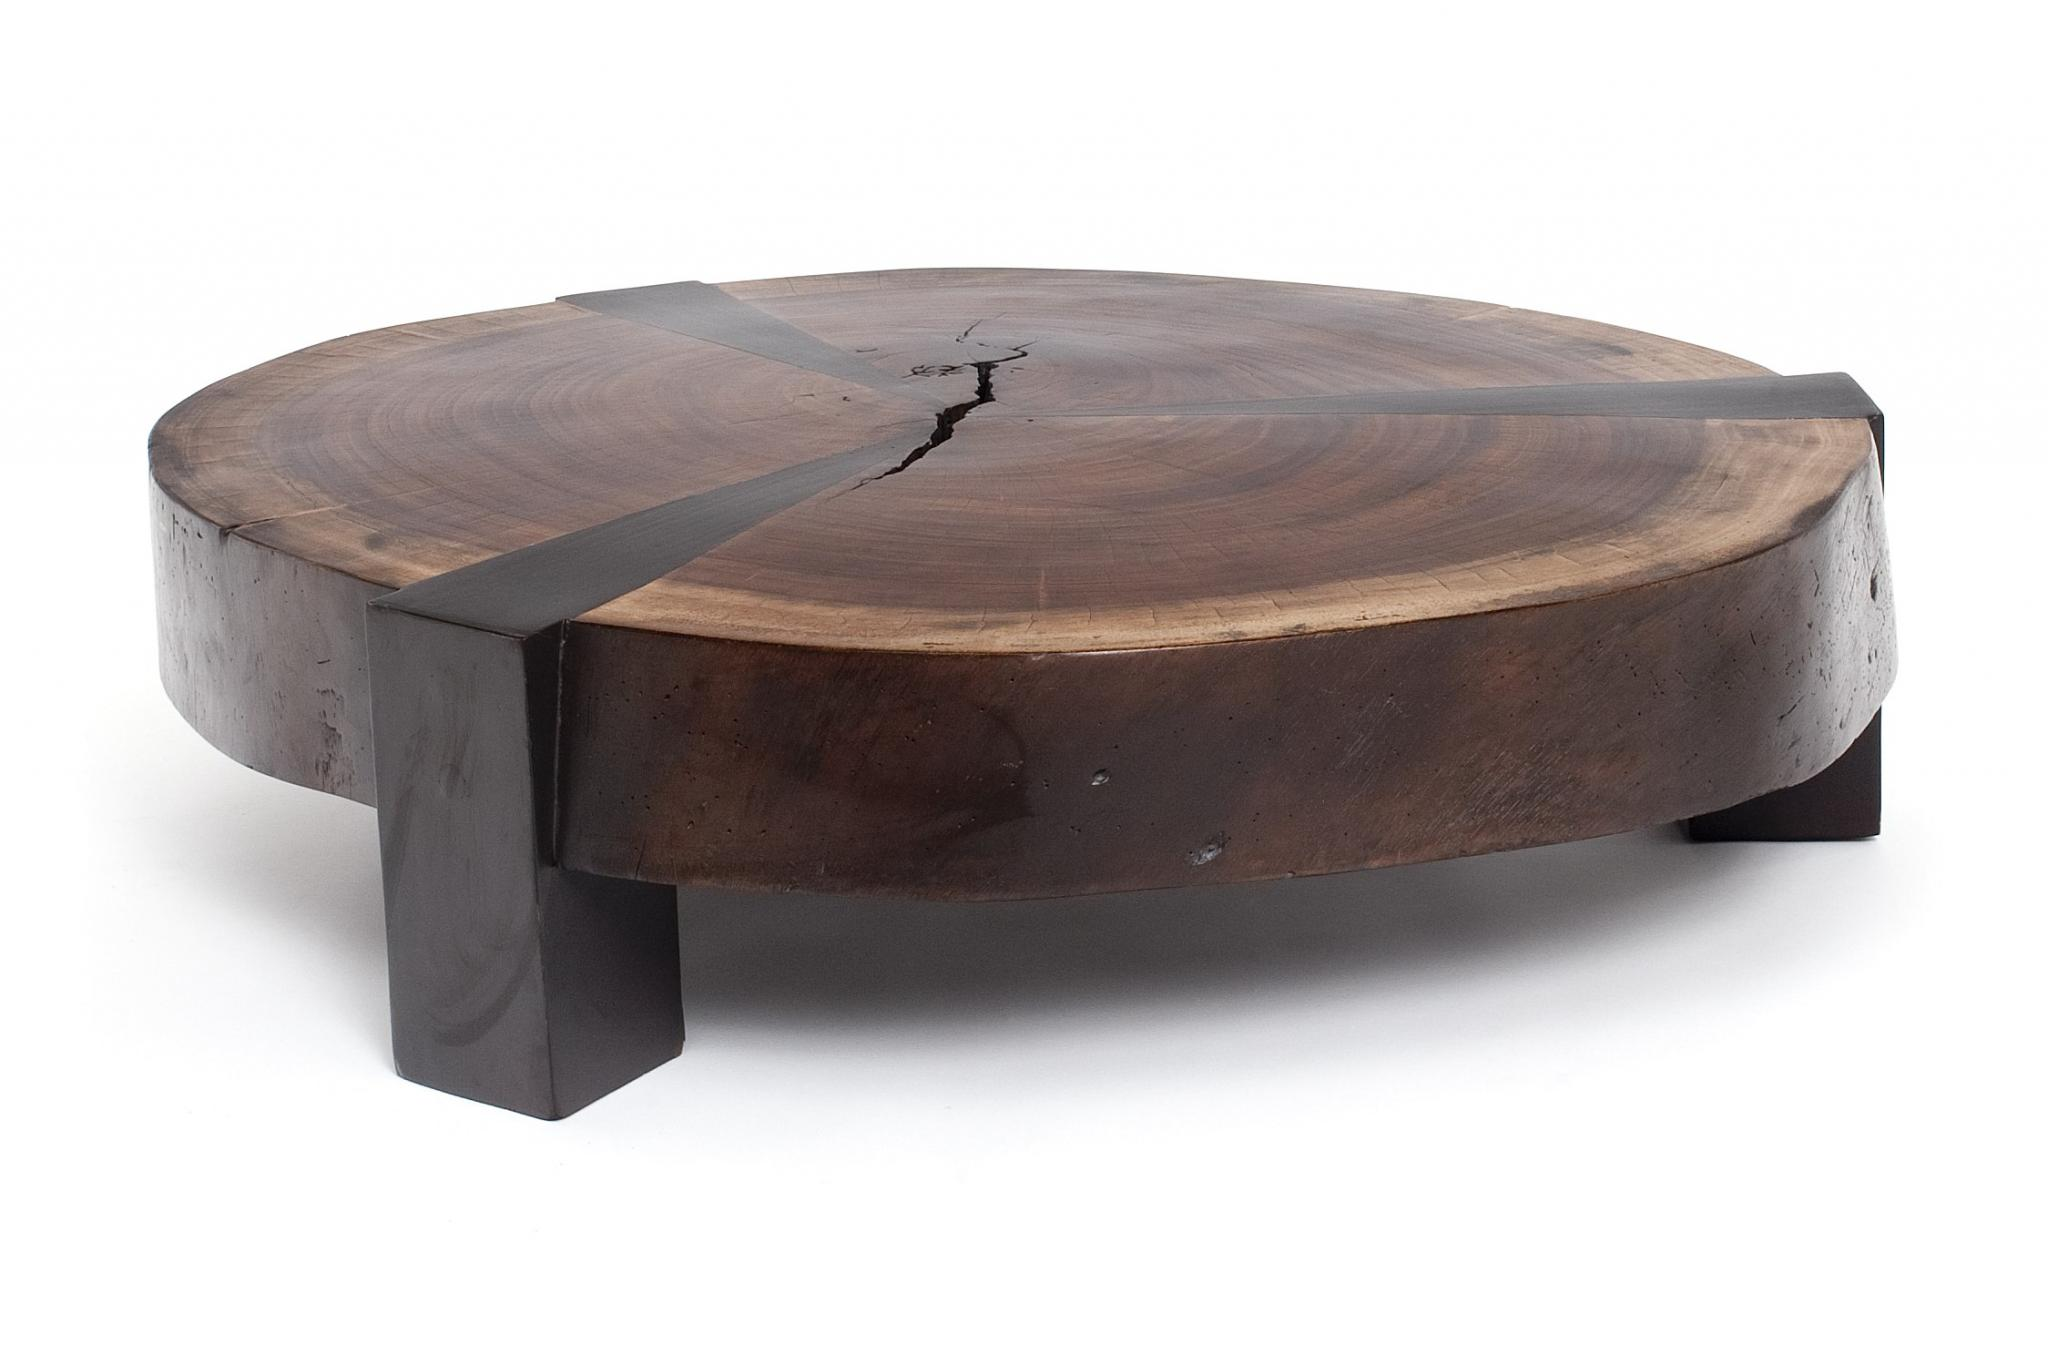 In Process: The Bolacha Star Coffee Table